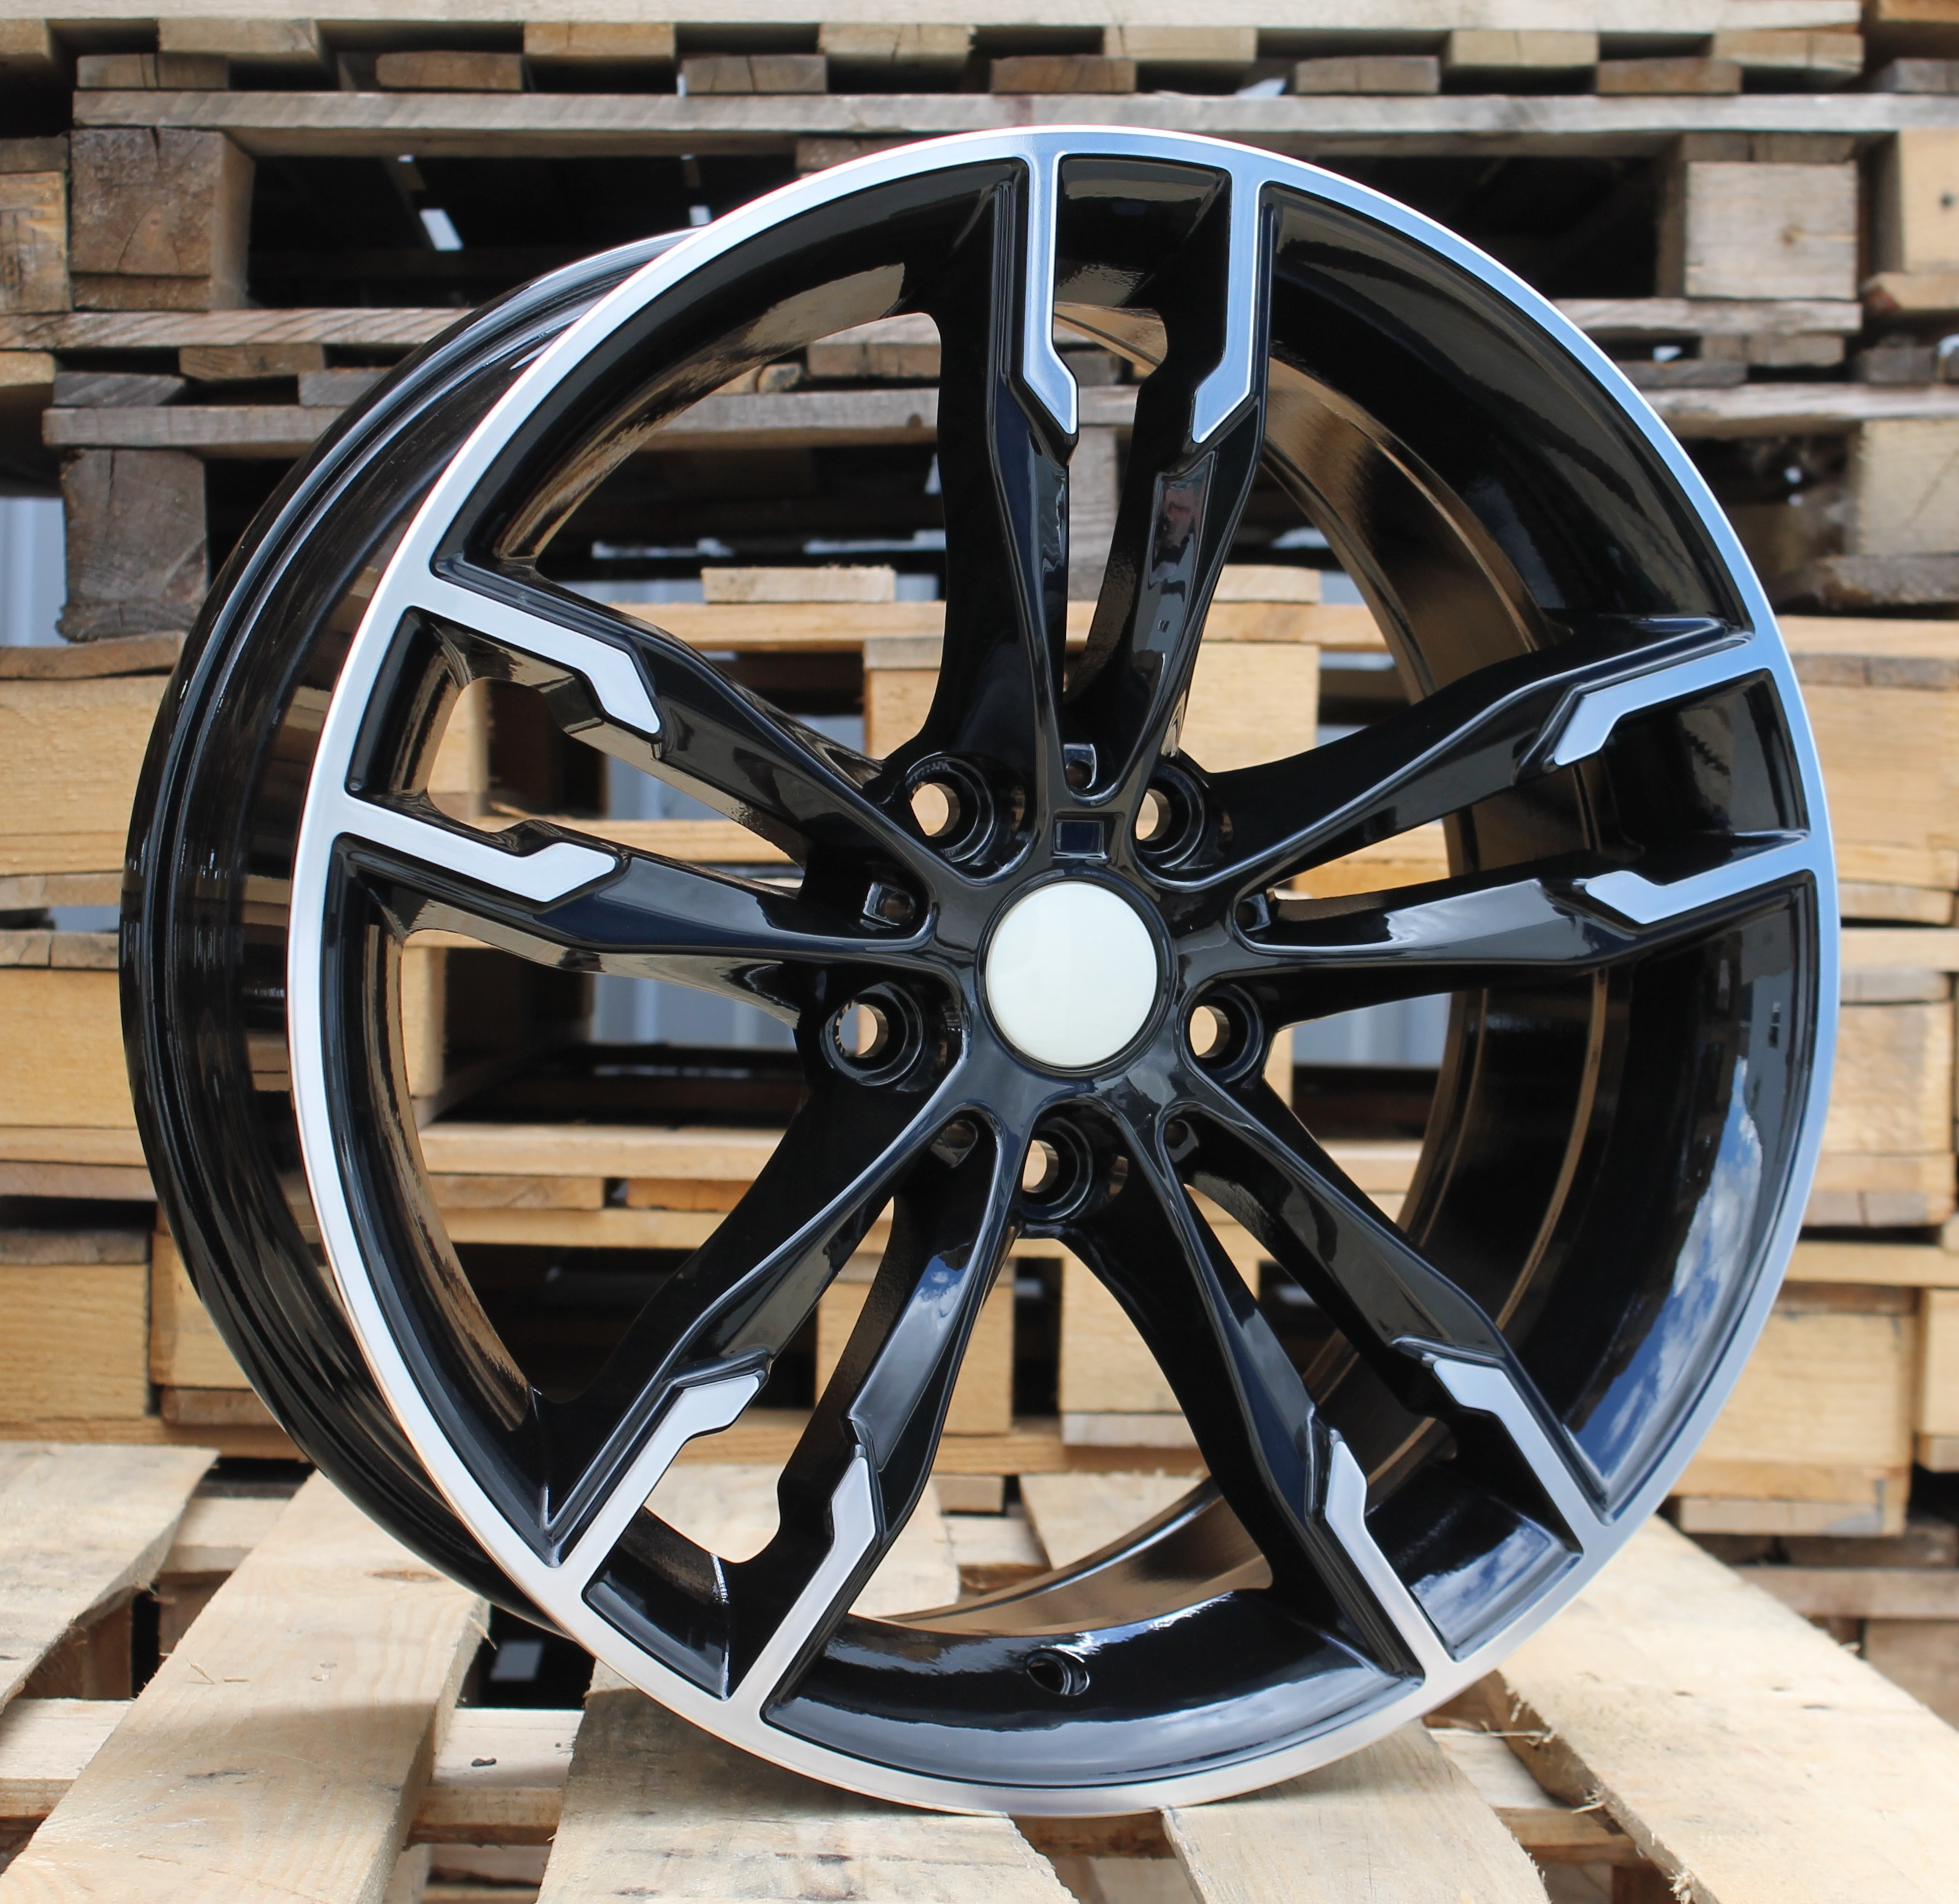 B18X8 5X120 ET40 72.5 BY1257 MB+Powder Coating RWR BM (+3eur) (K7)## 8x18 ET41 5x120